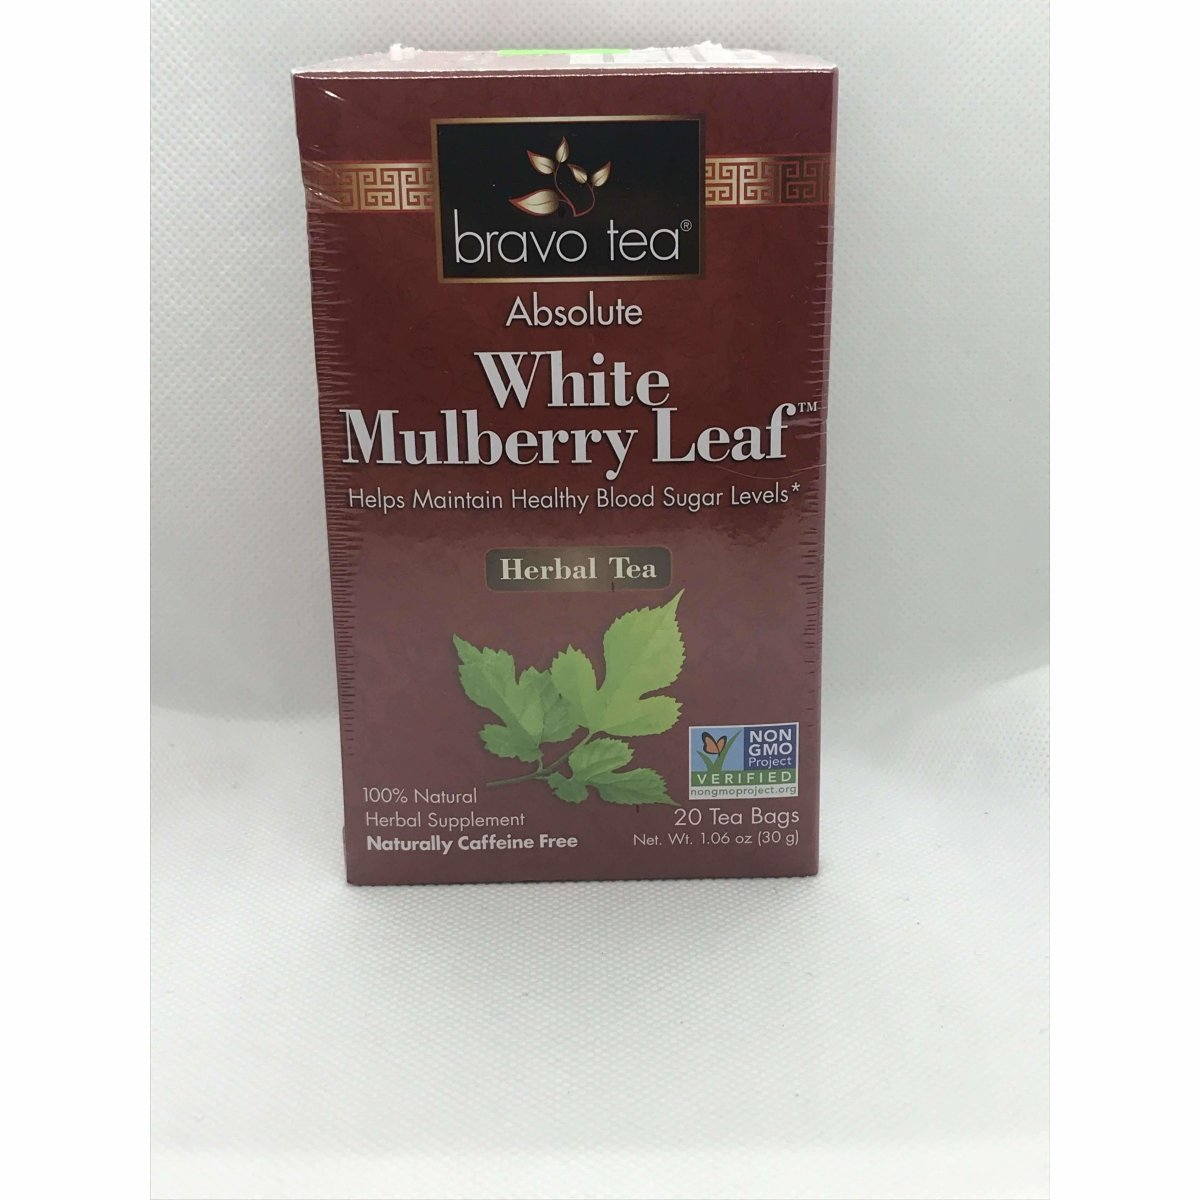 White Mullberry Leaf - 20 Teabags